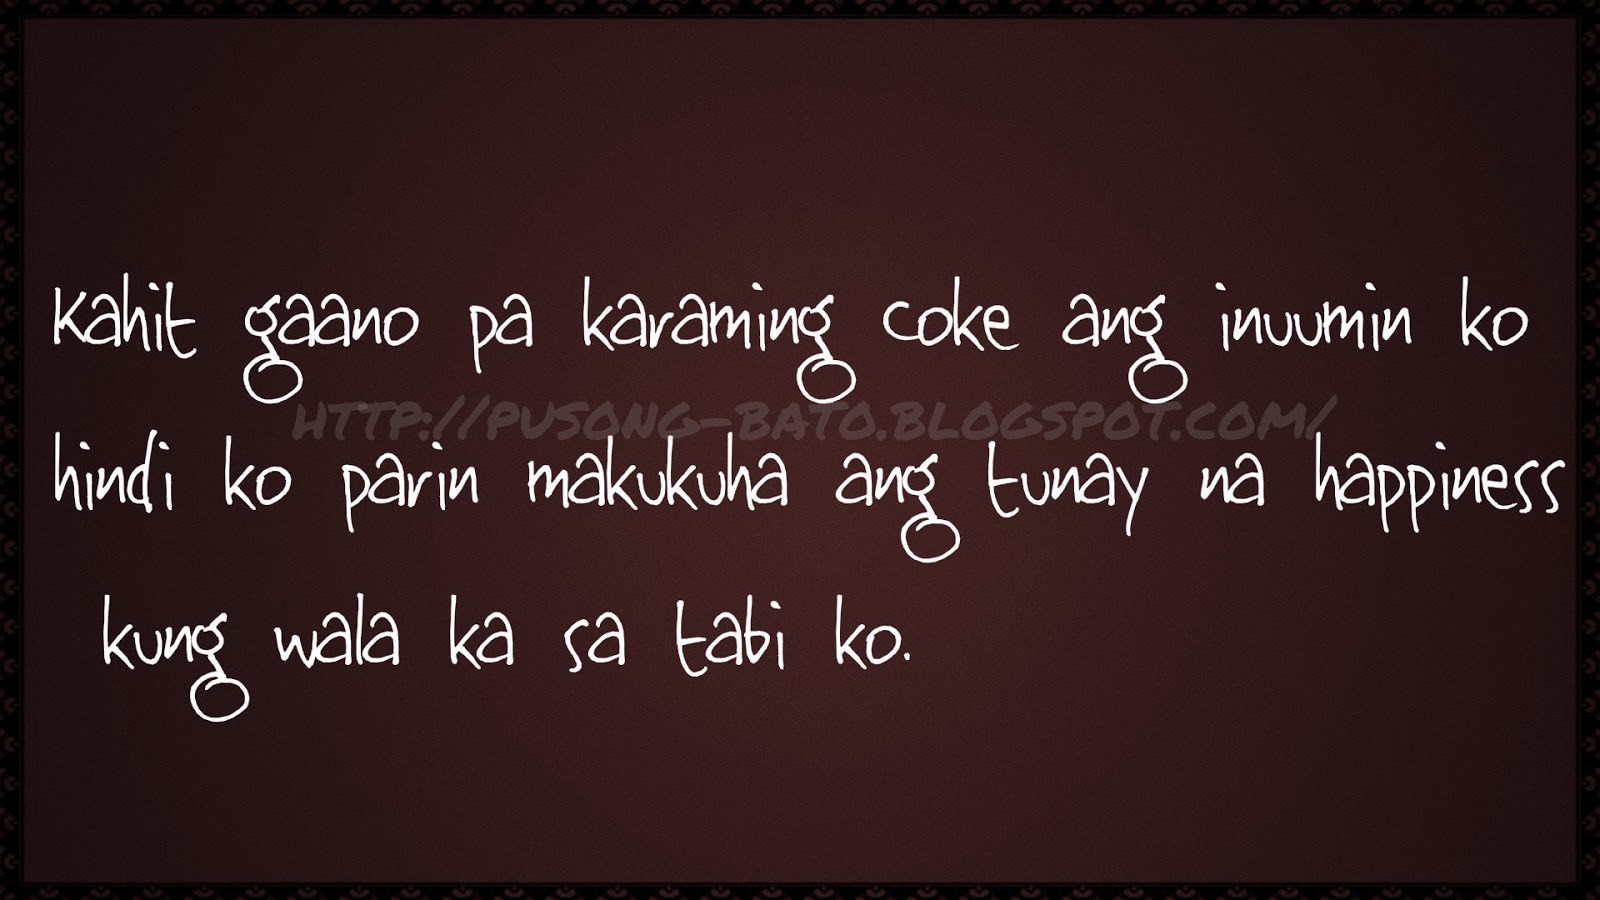 Quotes about Filipino tradition (24 quotes)